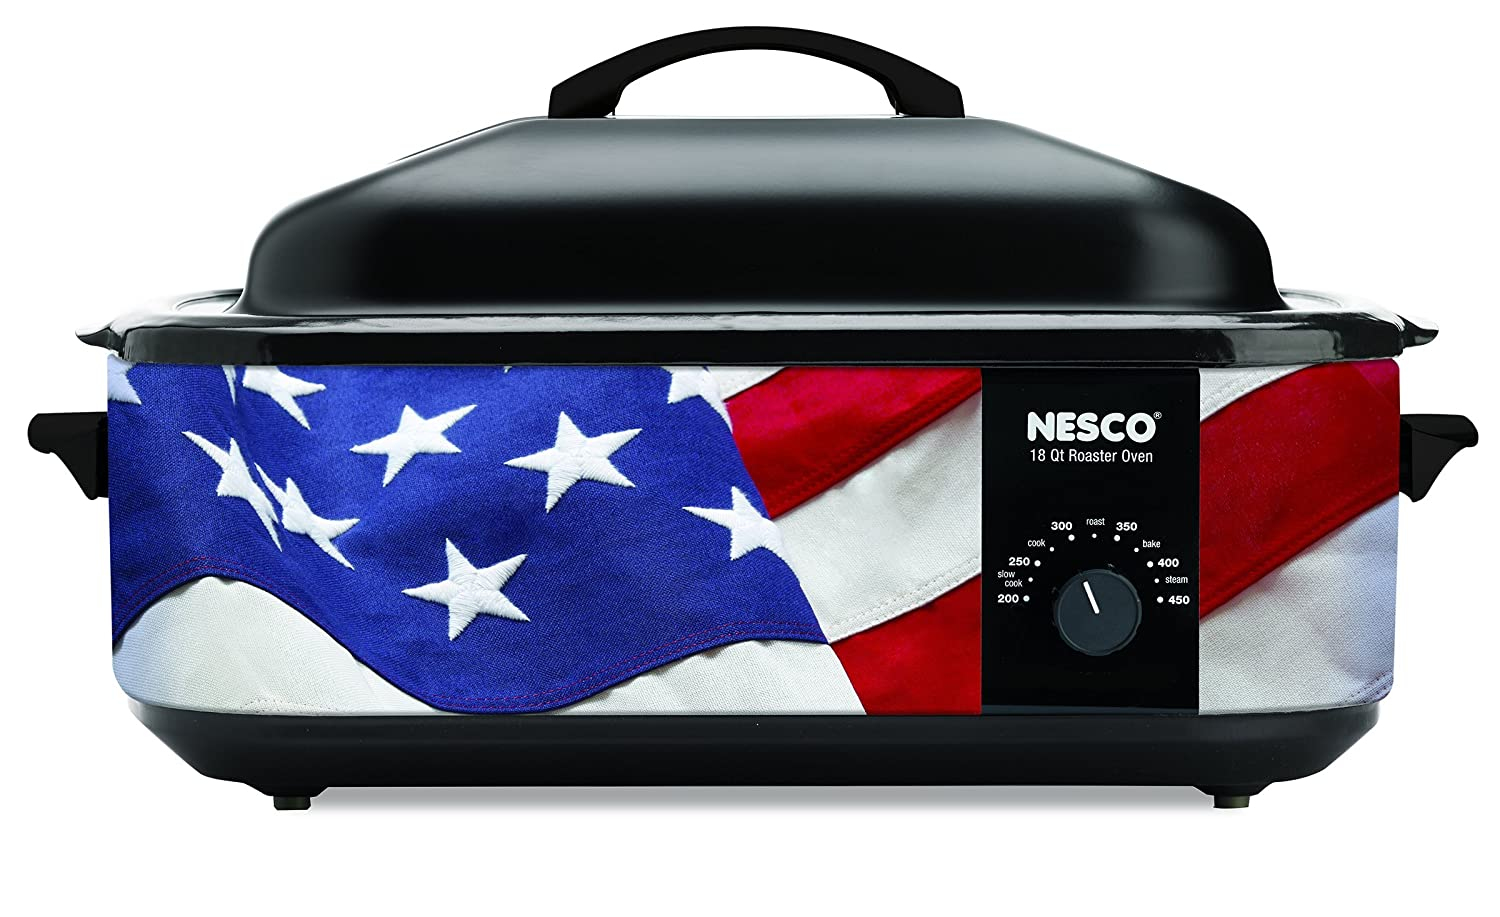 NESCO 4818-76, Patriotic Roaster Oven with Porcelain Cookwell, Red/White/Blue, 18 quart, 1425 watts